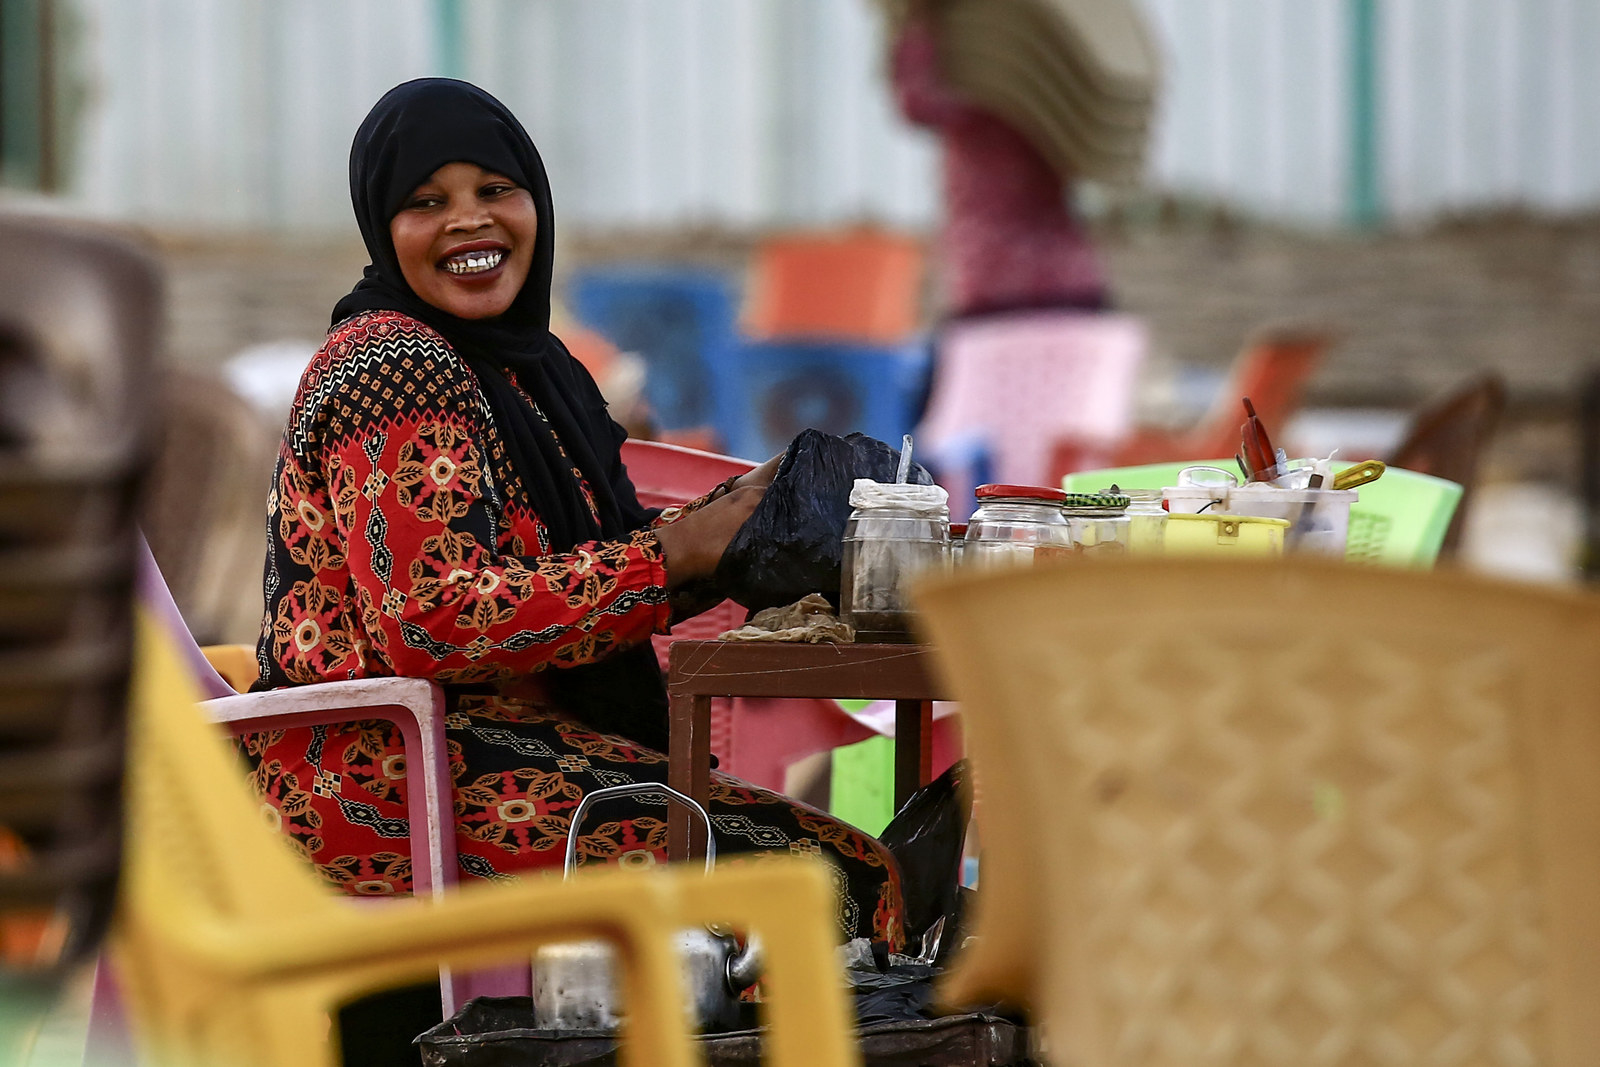 A Sudanese woman prepares tea as she sits at her spot along the capital Khartoum's Nile Street on February 10, 2019. - Tea-sellers had been earlier banned for months from the popular Nile Street.